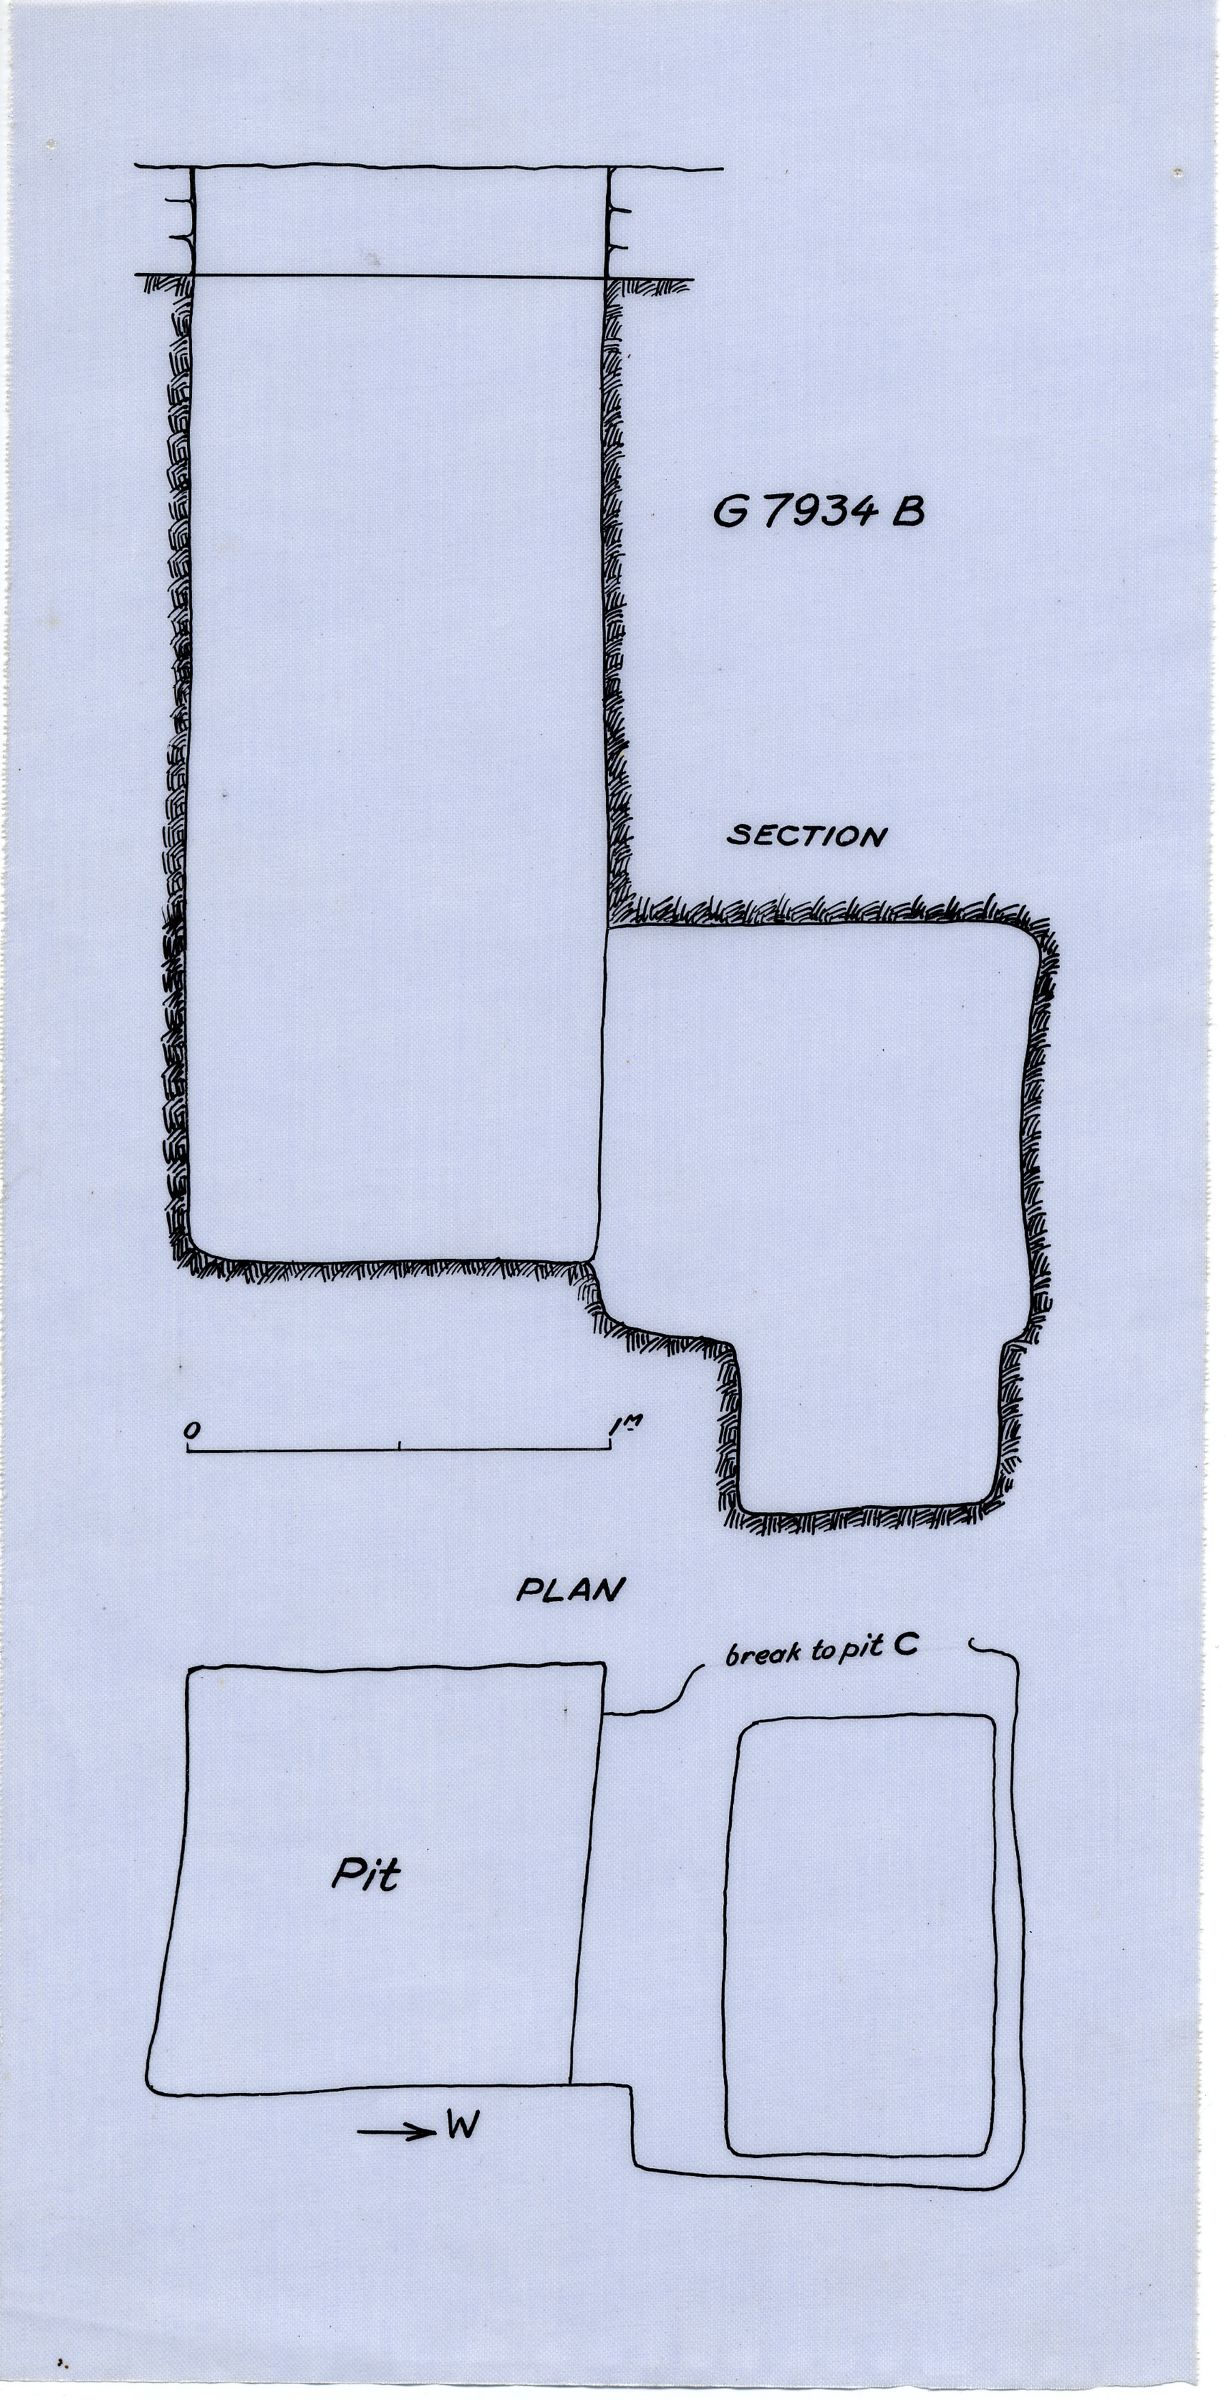 Maps and plans: G 7934, Shaft B